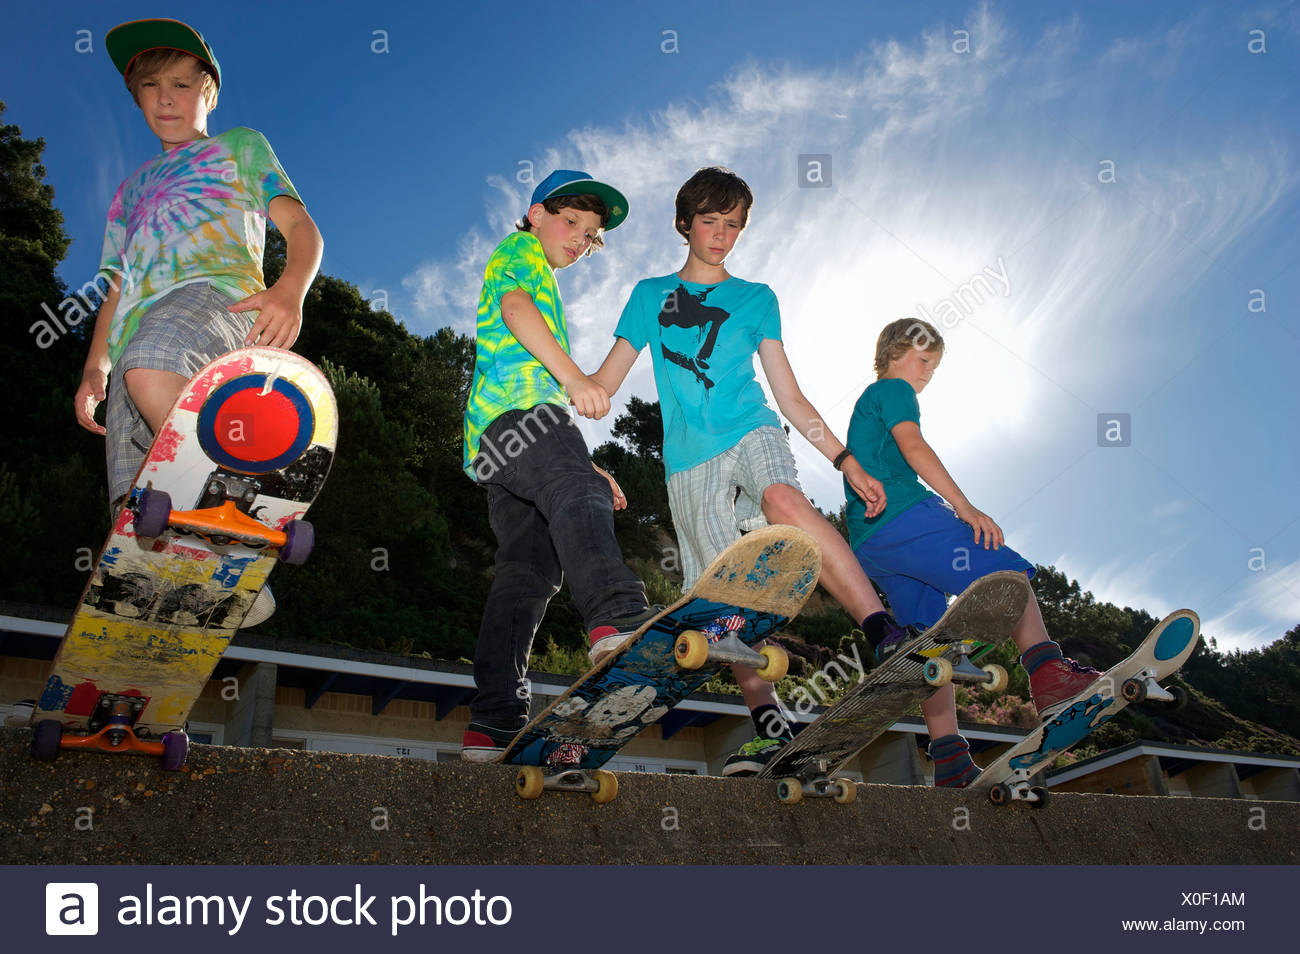 Portrait de quatre garçons sur skateboards Photo Stock